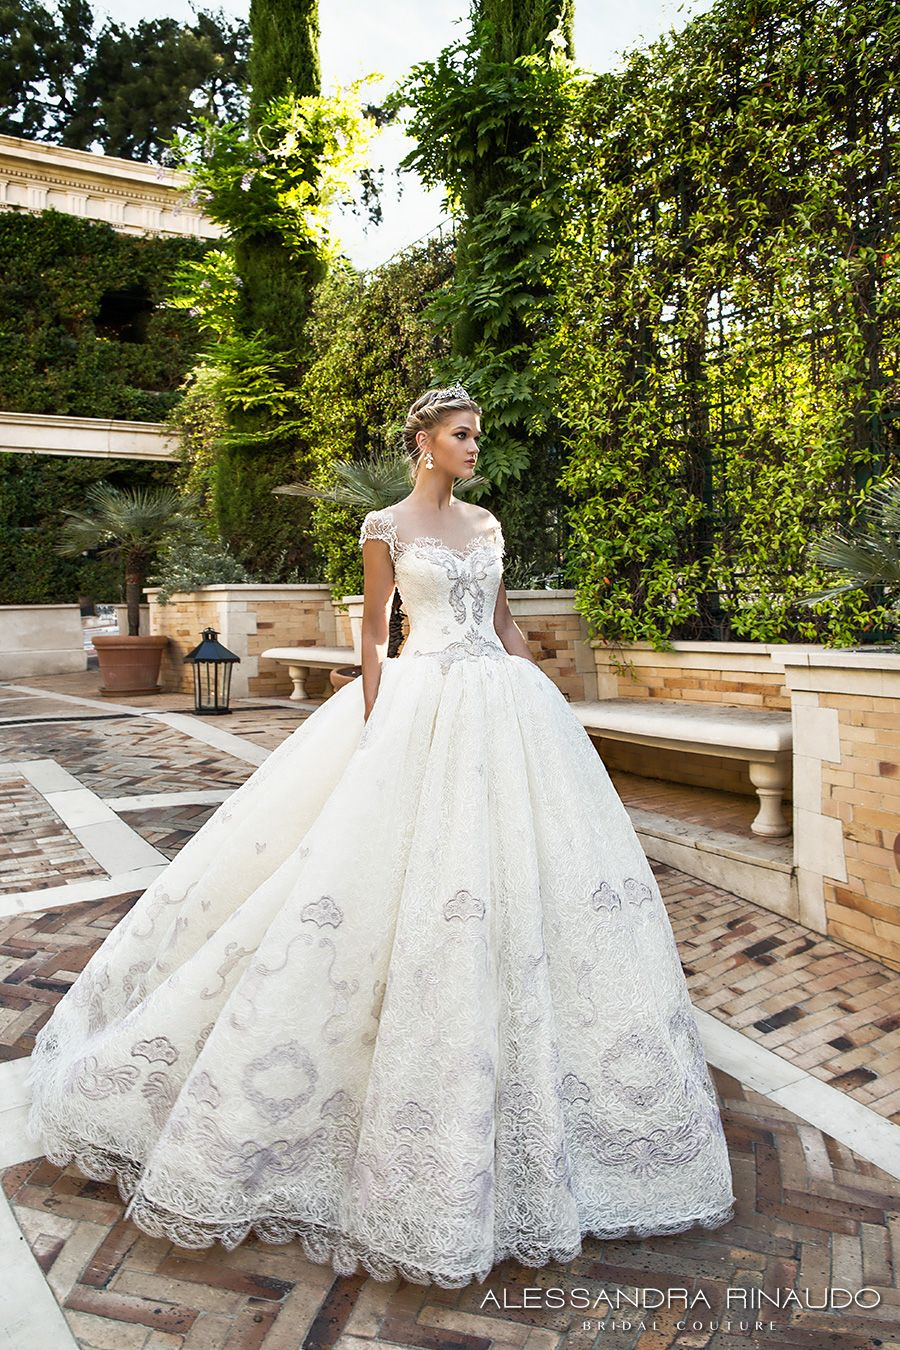 Alessandra rinaudo wedding dresses u gorgeous italian bridal